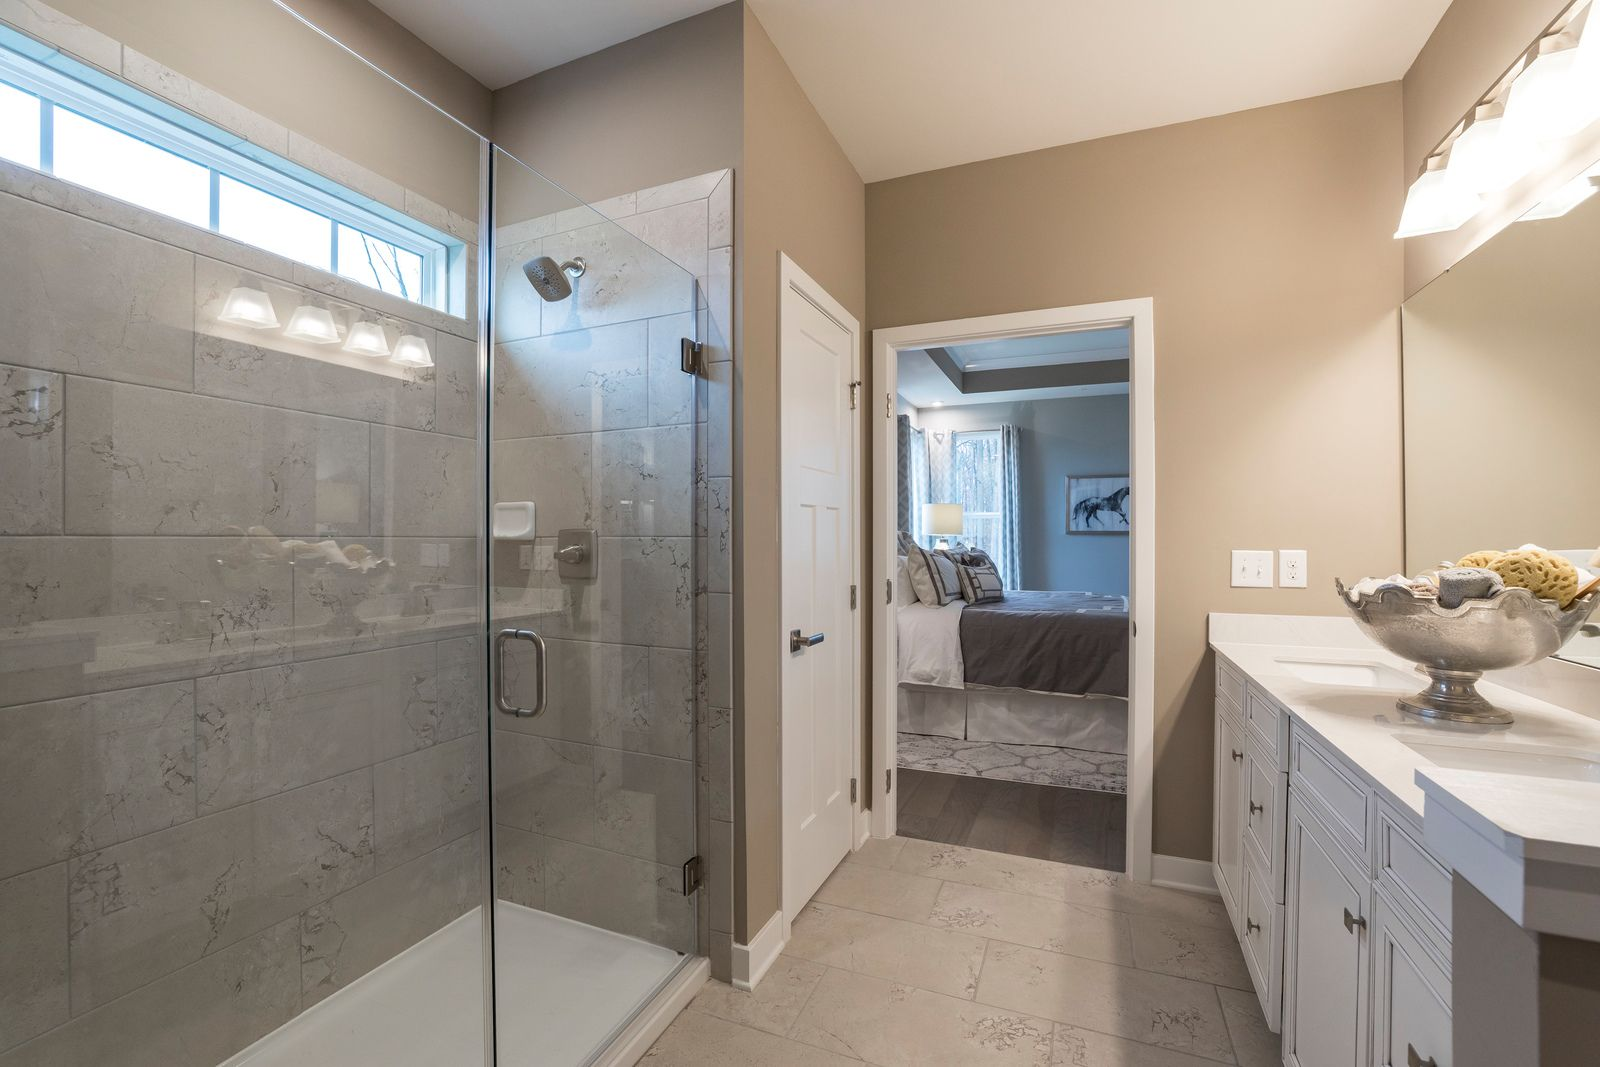 Bathroom featured in the Griffin Hall Grand By Ryan Homes in Philadelphia, PA